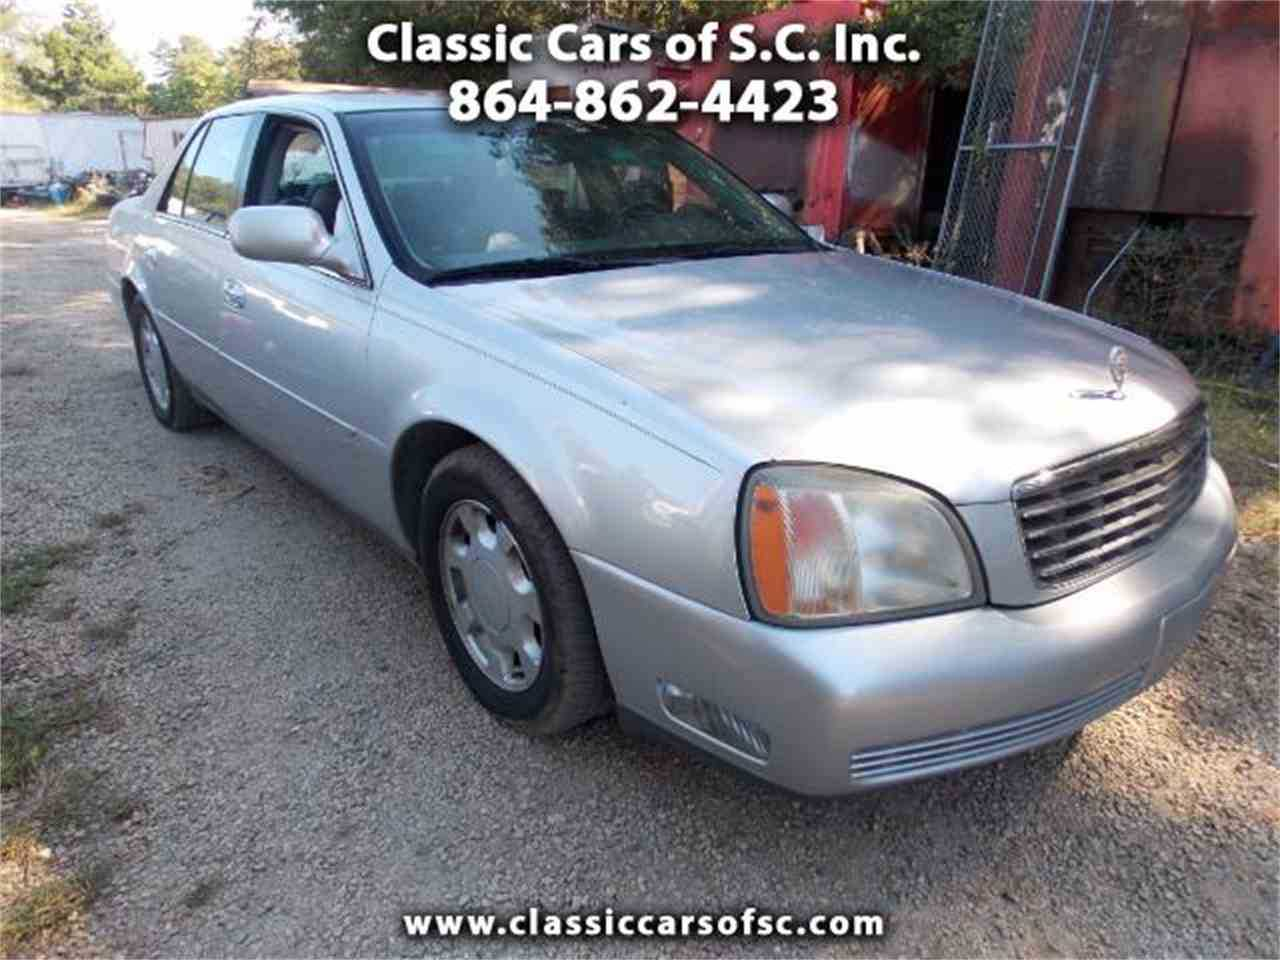 Used Cadillac De Ville For Sale In South Carolina 1951 Coupe Deville 2000